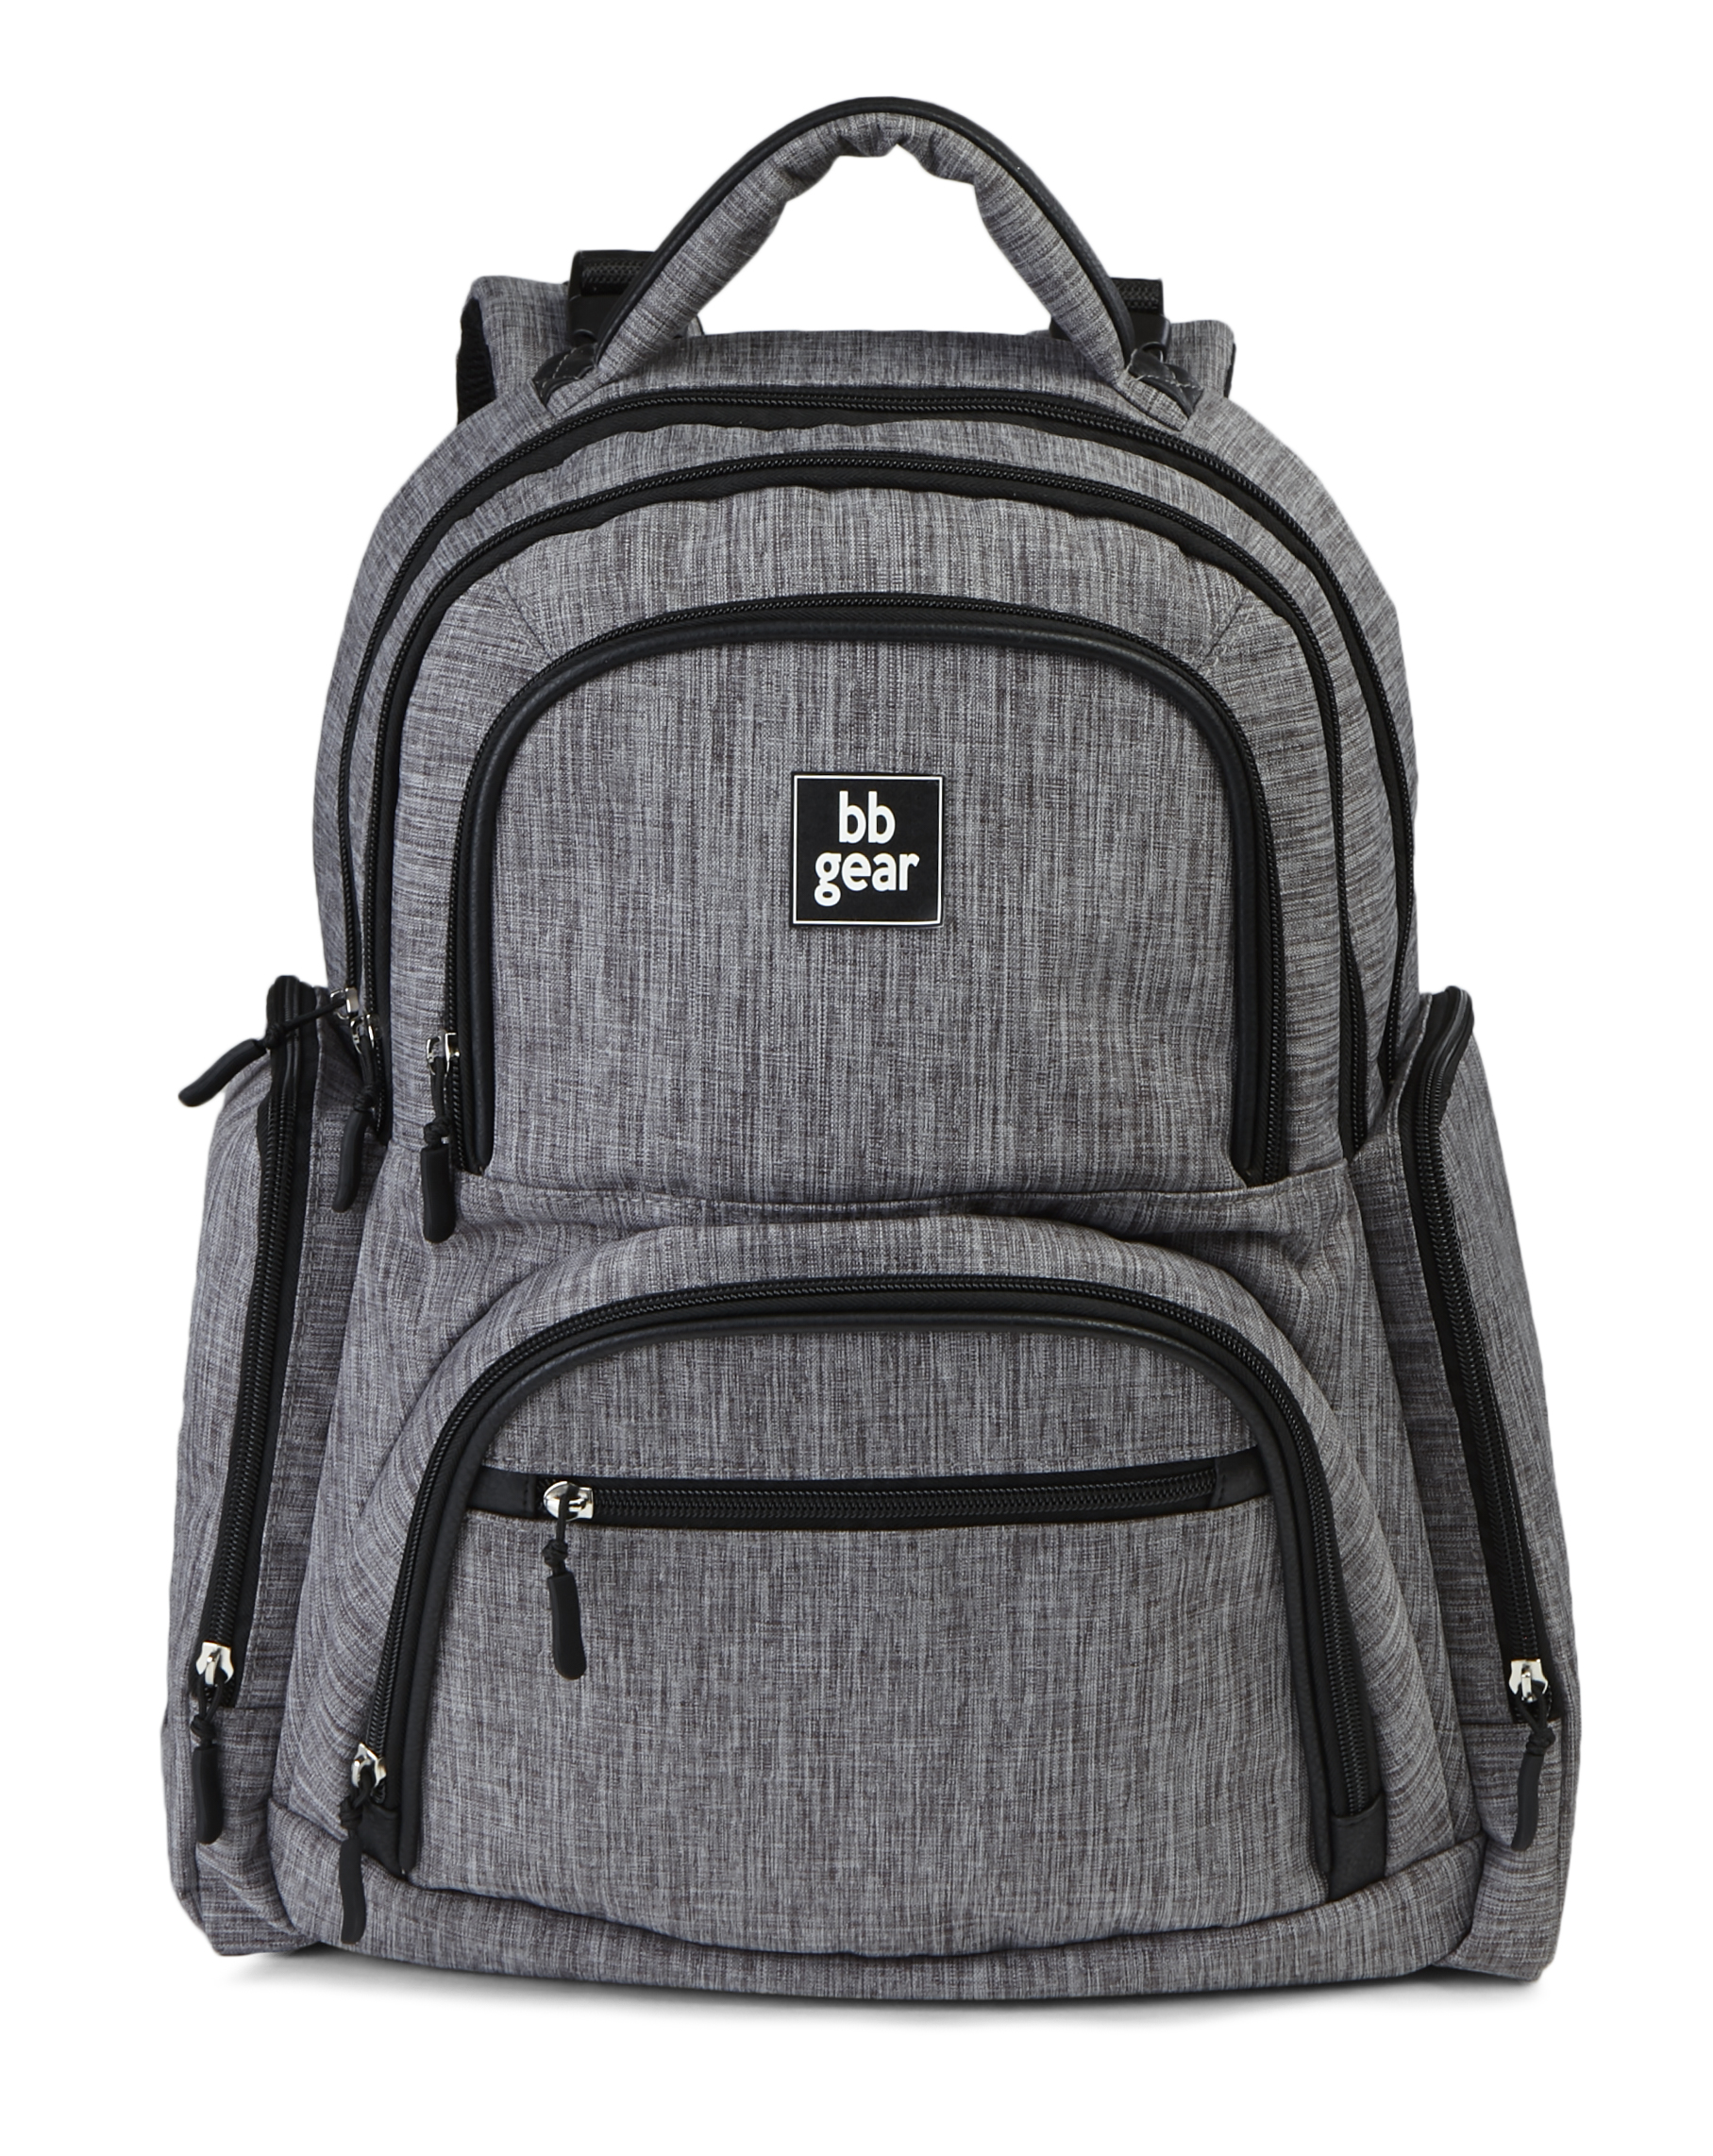 Baby Boom BB Gear Grey Heather Backpack Diaper Bag by Baby Boom BB Gear